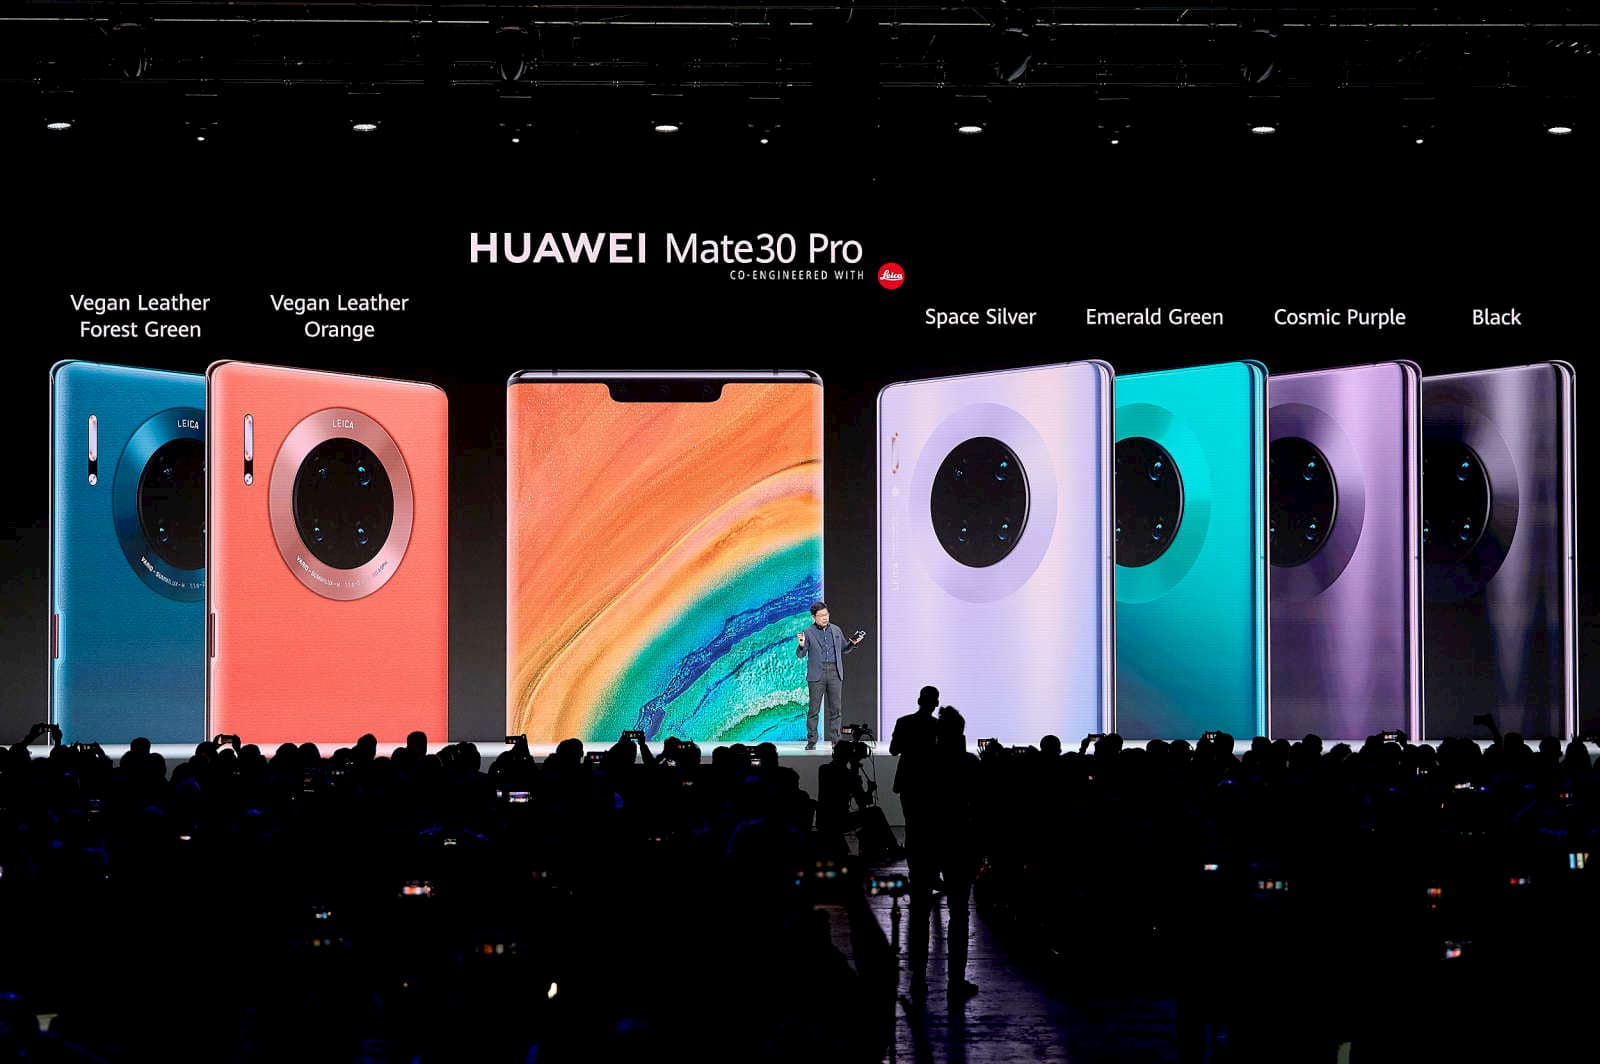 huawei mate 30 pro and mate 30 series